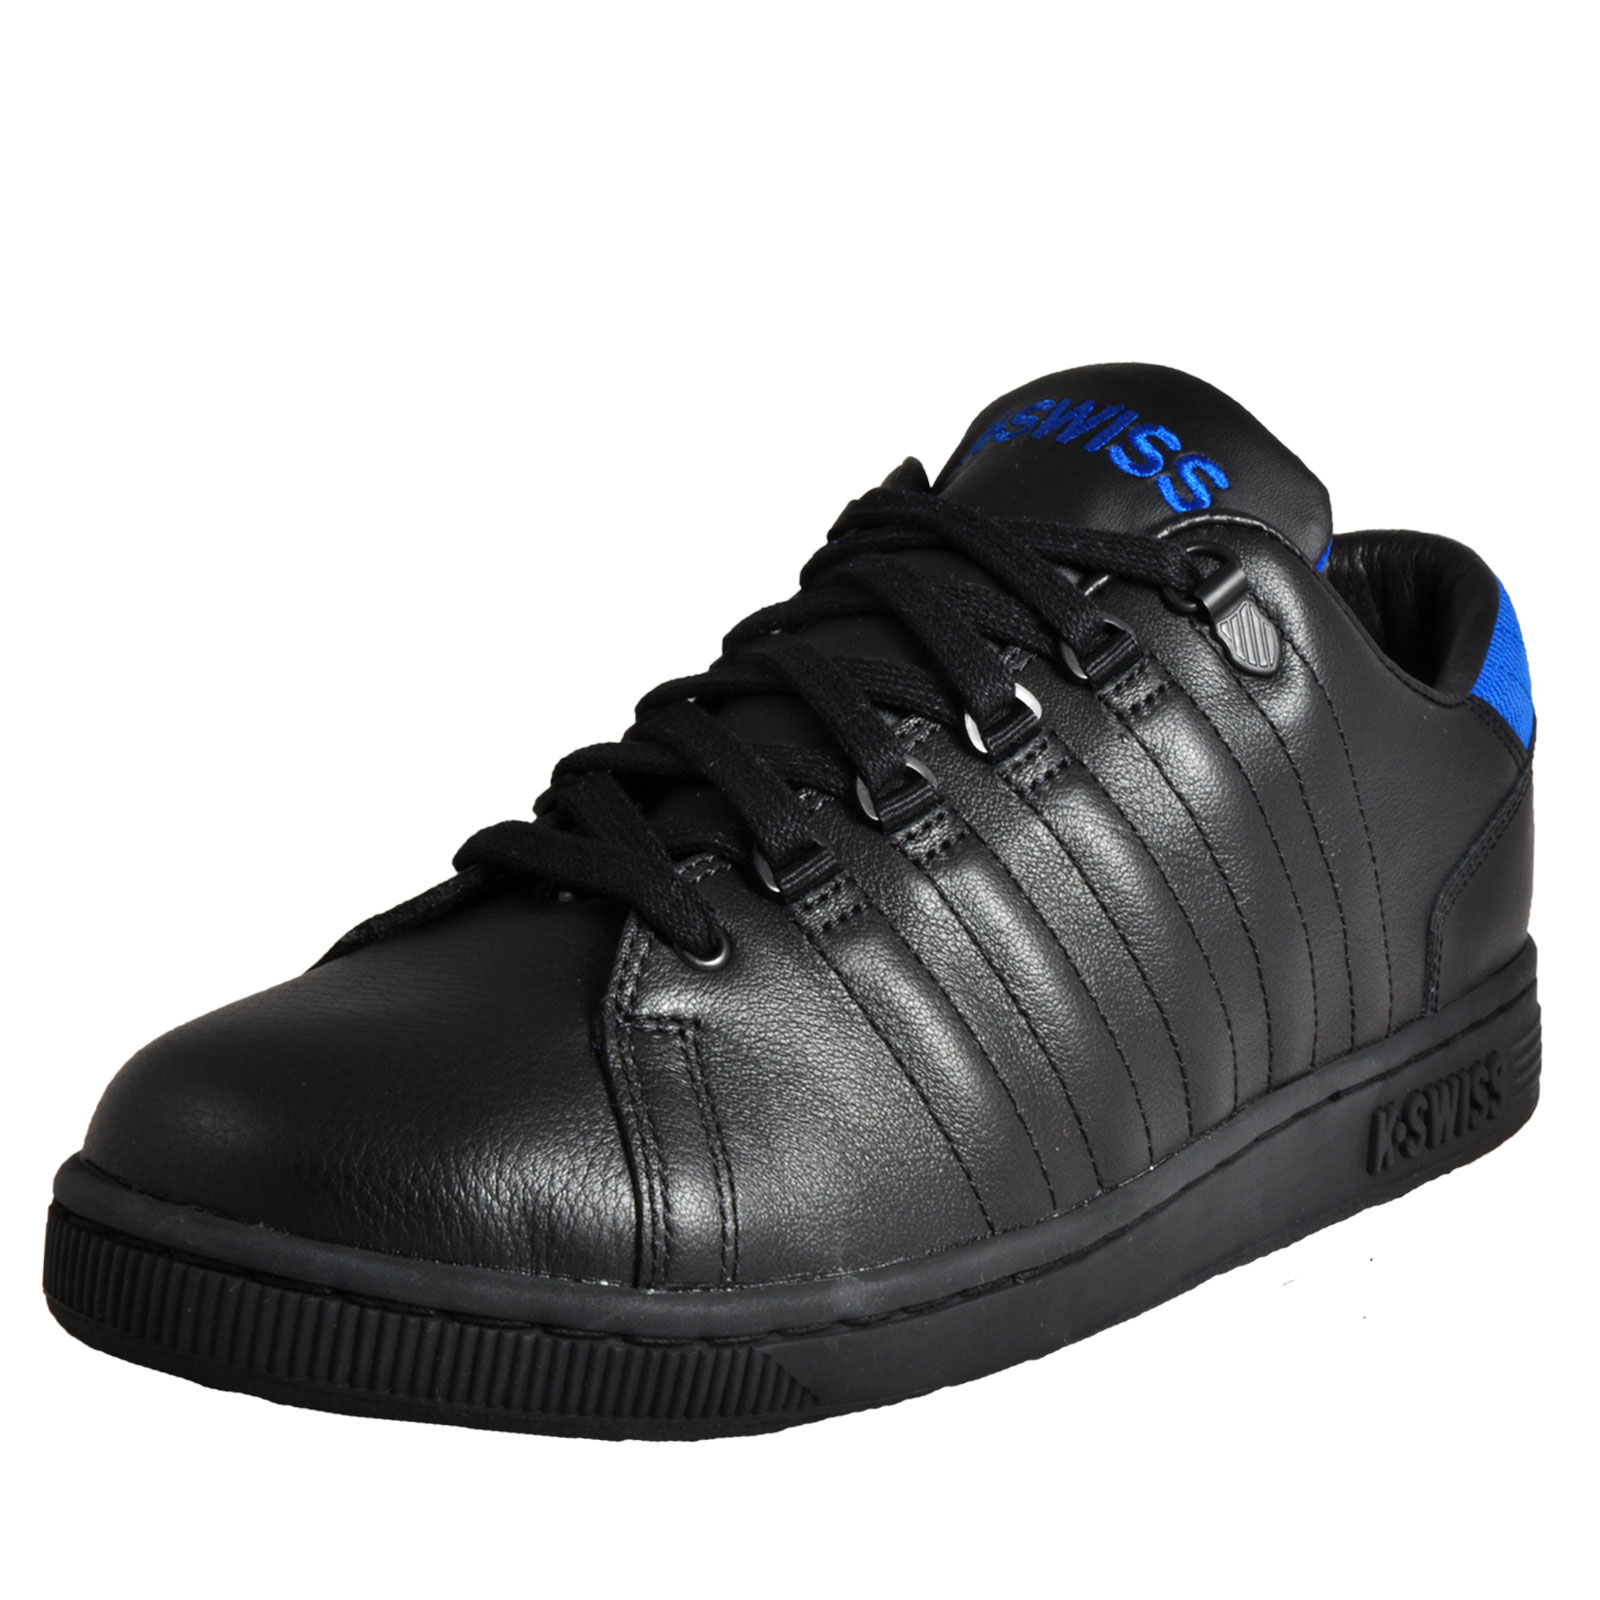 8d605fa699 Mens K Swiss Lozan III Tongue Twister Classic Casual Leather Black Trainers  Kleidung & Accessoires